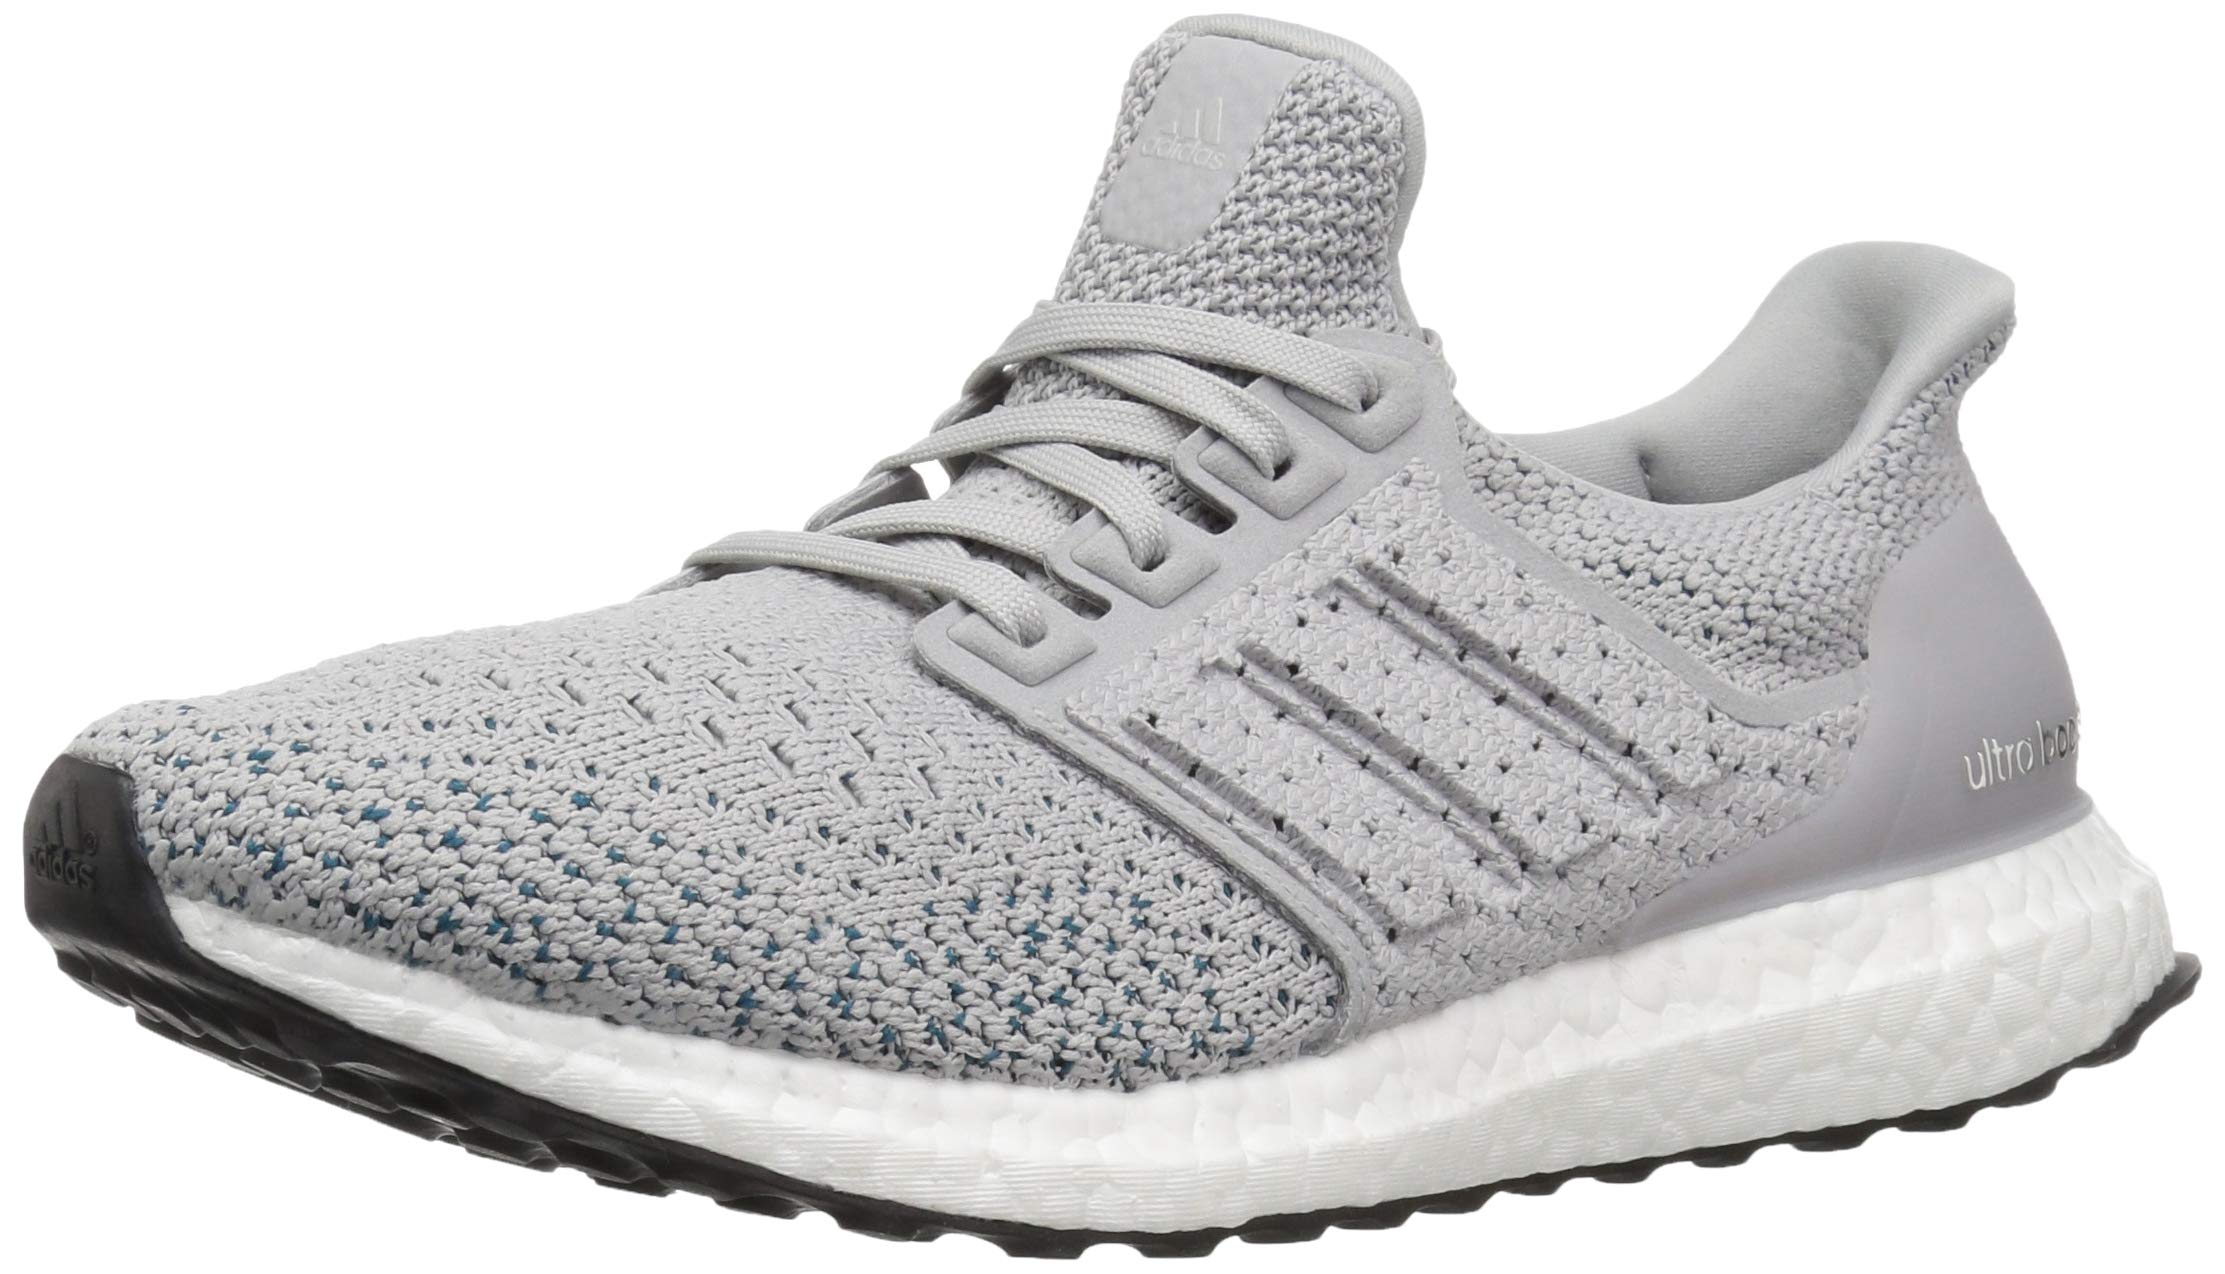 adidas Men's Ultraboost, GreyReal Teal, 9.5 M US